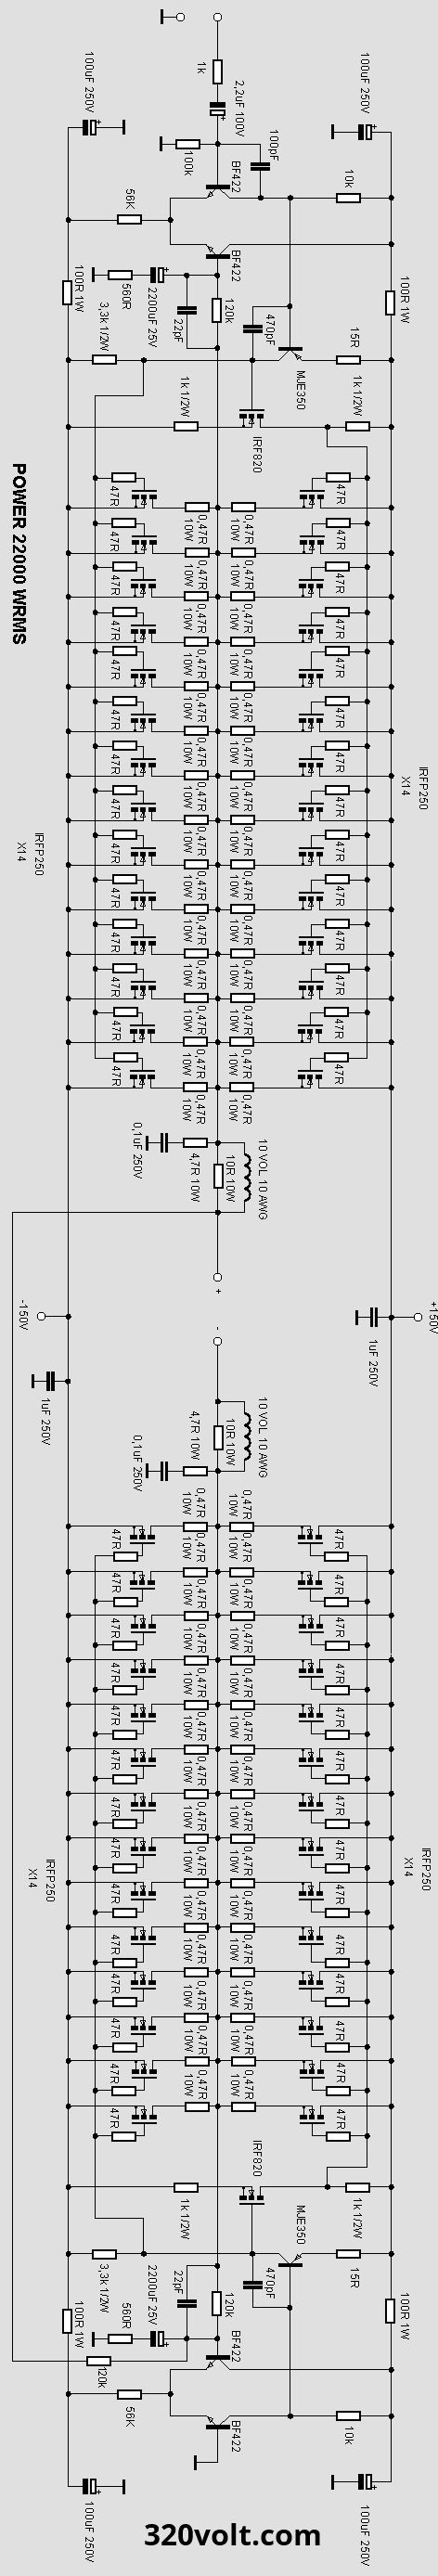 1000 watt amplifier circuit diagram [ 472 x 2776 Pixel ]